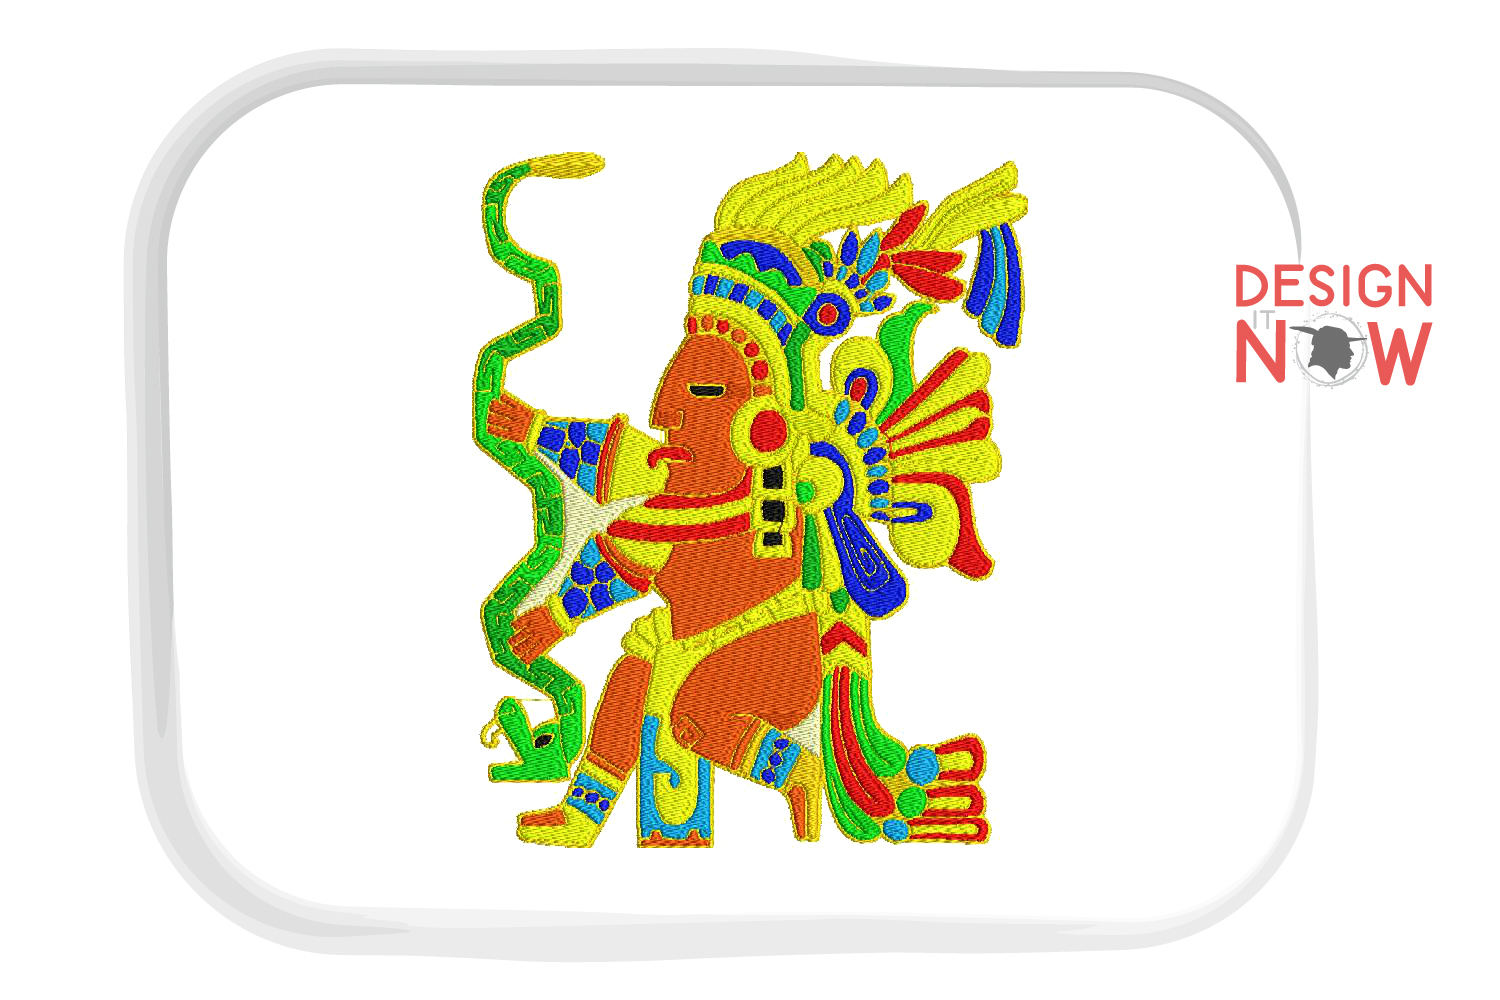 Inca Culture Embroidery Design, Inca Mythology Embroidery example image 6